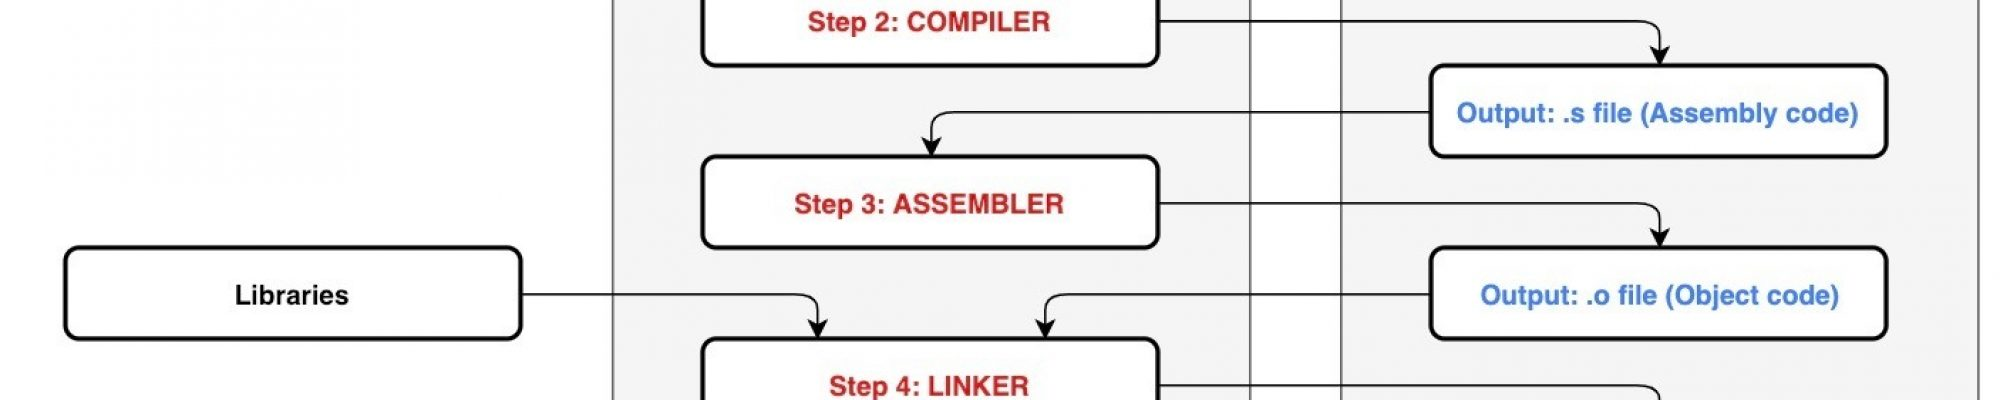 05_Embedded_Compile_Process_Figure_01